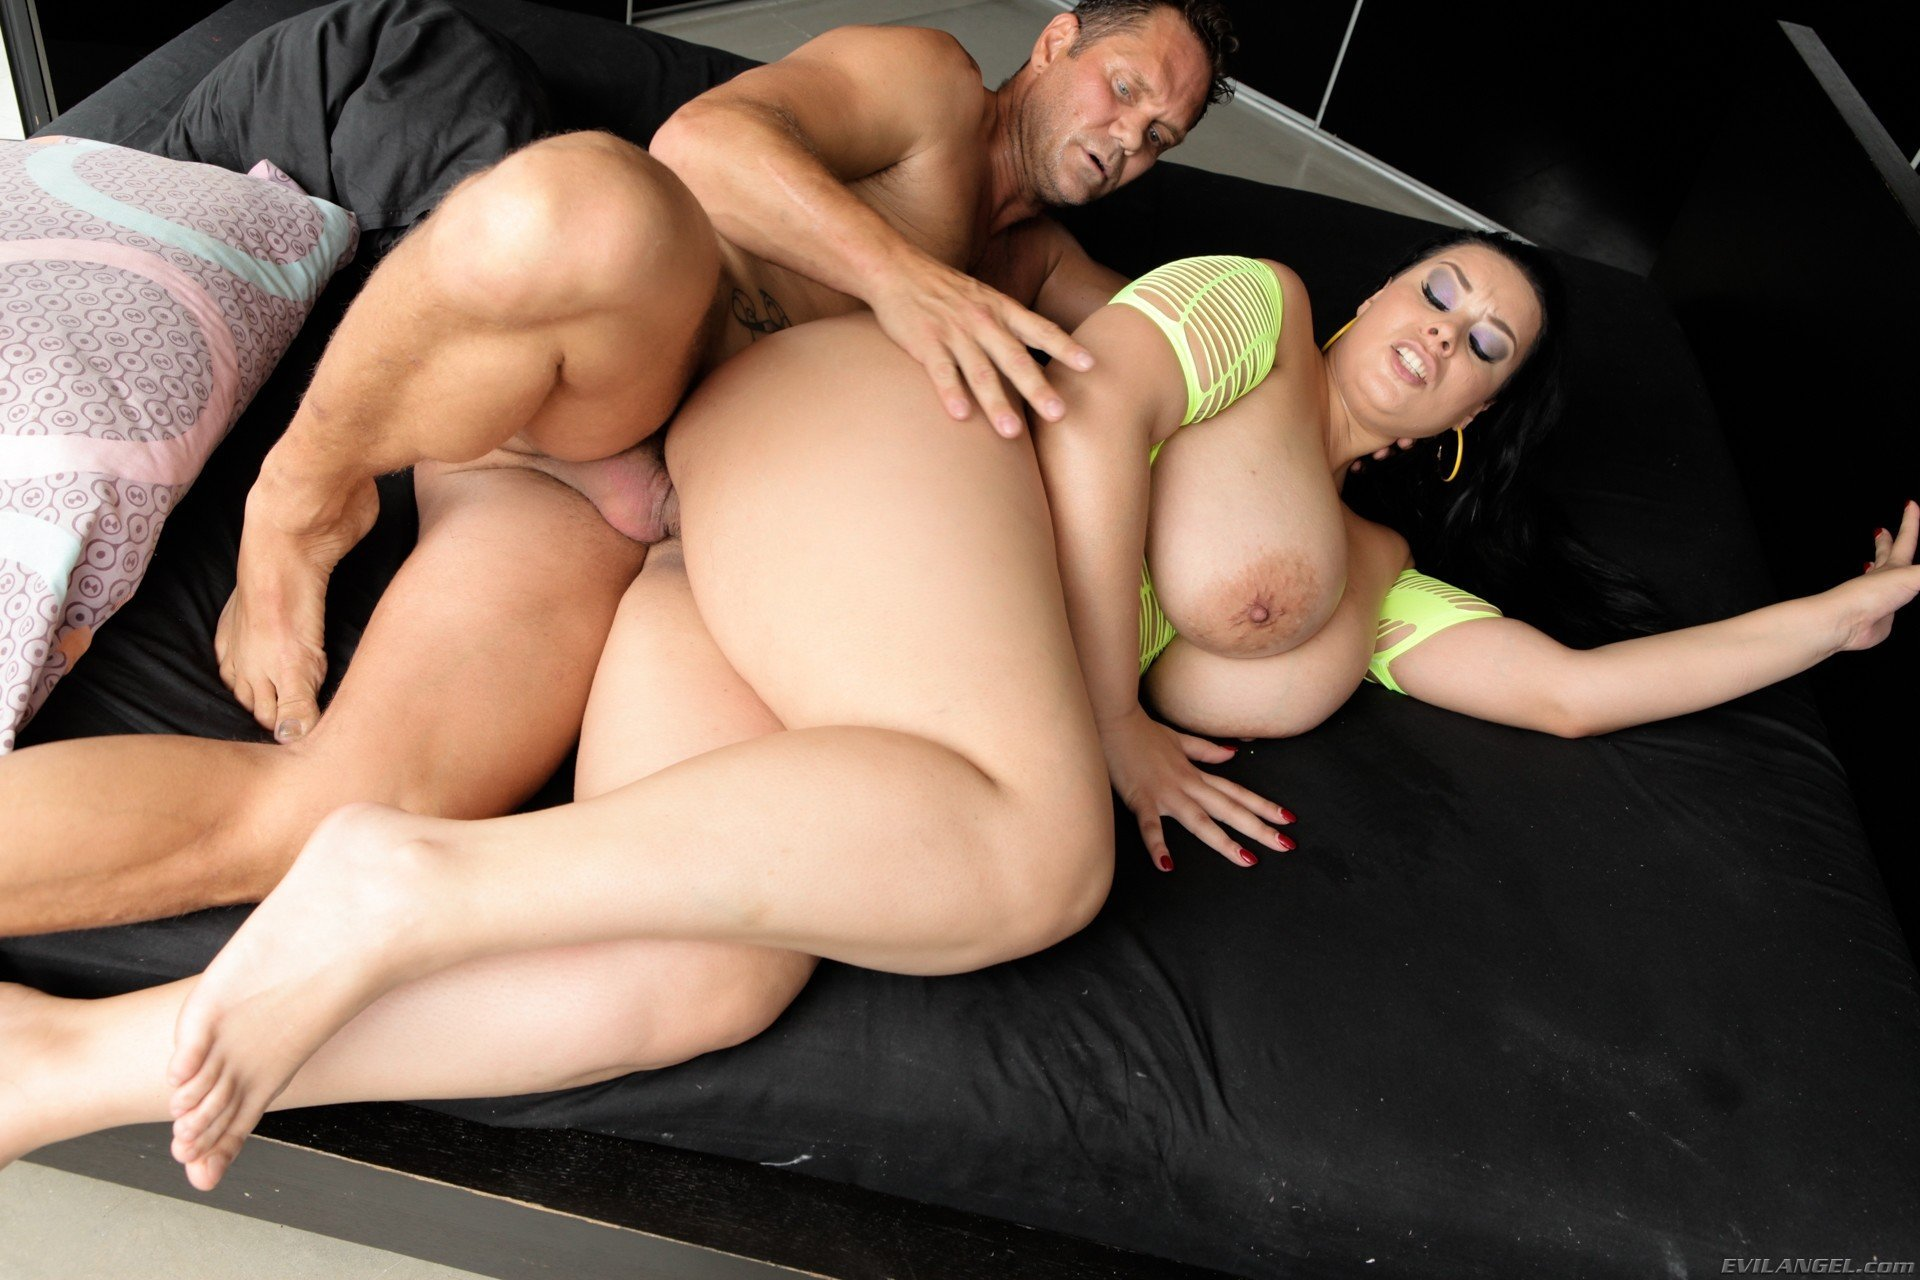 Curvy Bitch Smokes Vape And Passionately Fucks Her Tight Pussy With Black Dildo